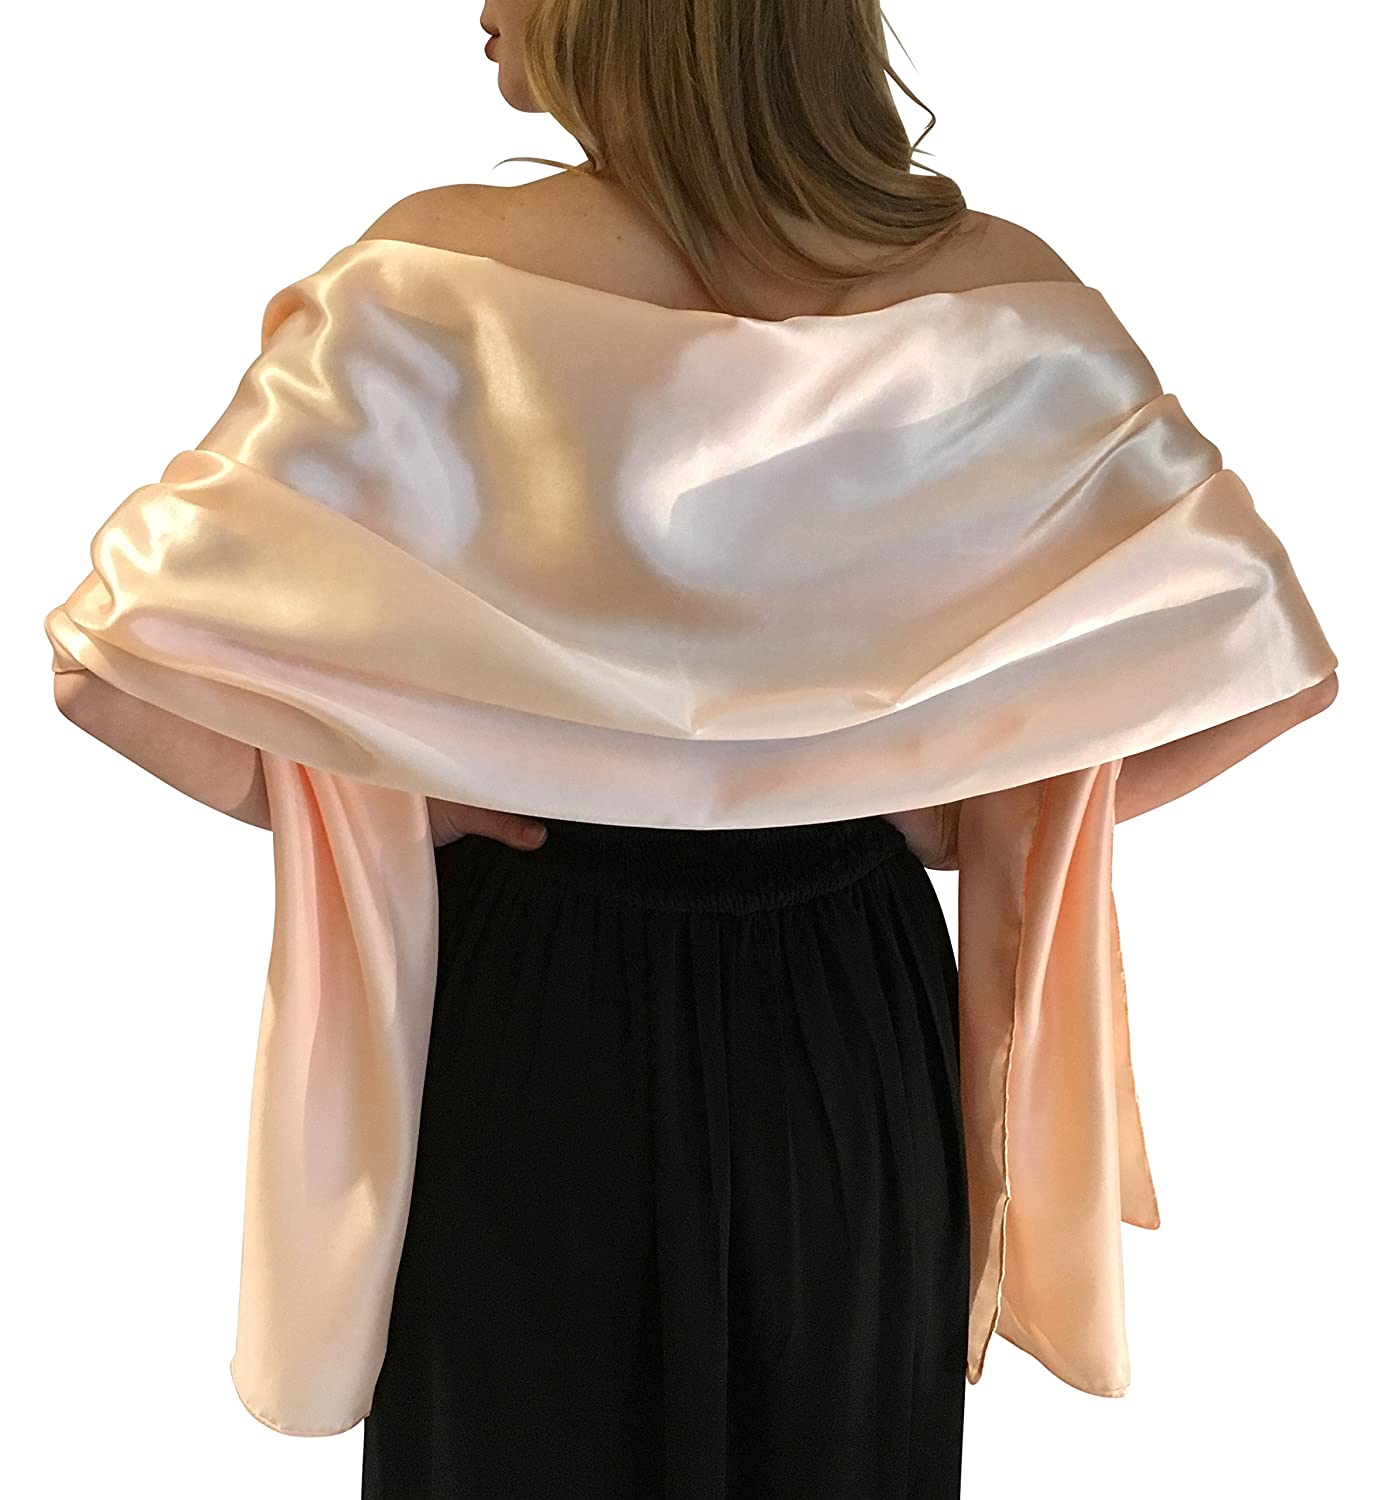 Silky Satin Wedding Wrap Stole Shawl Pashmina Scarf For Brides Bridesmaids in Ivory White Black Blue Silver Gold Pink Grey Green